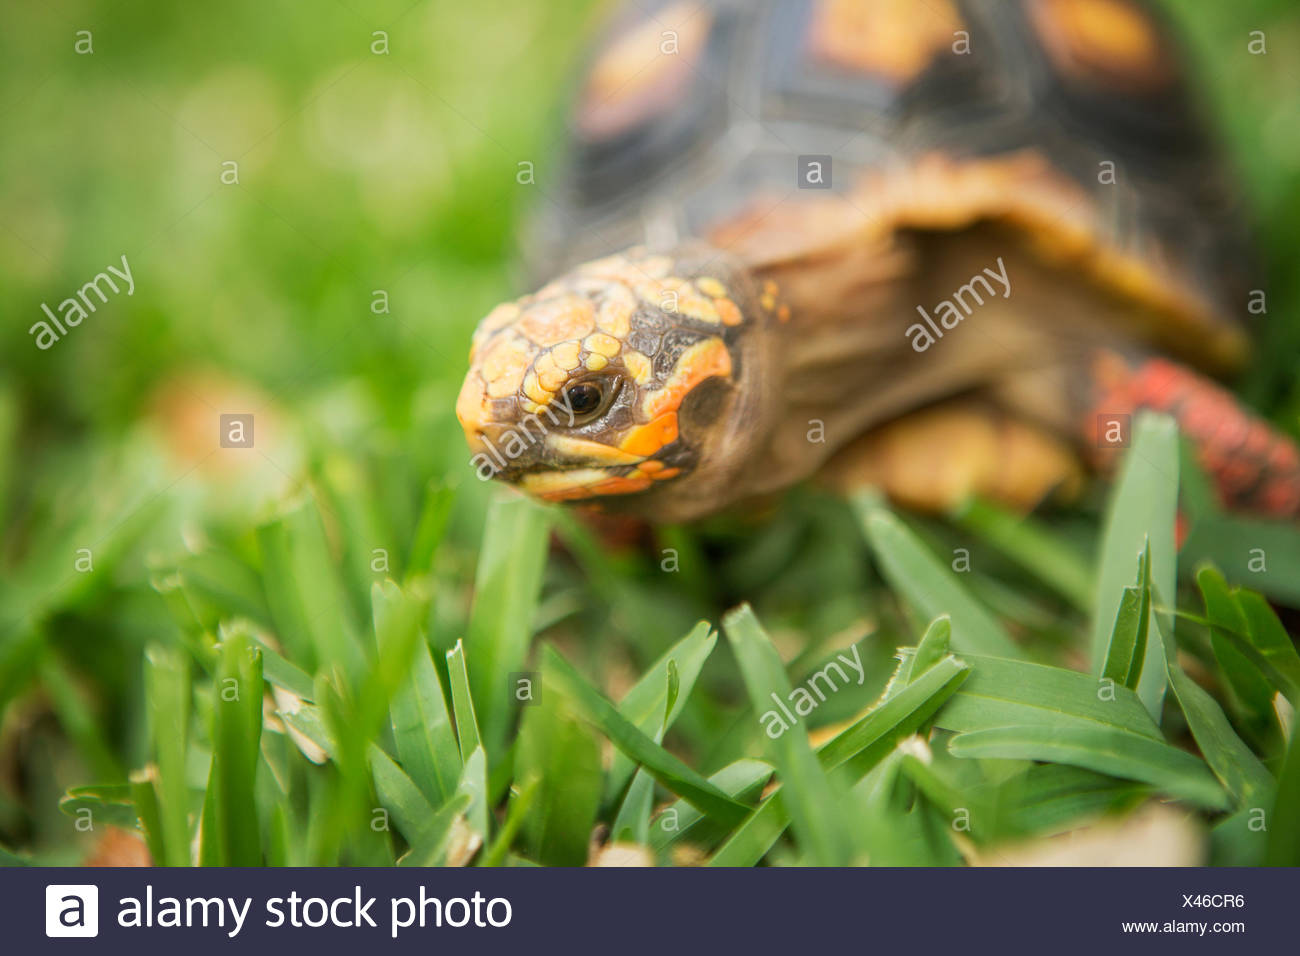 A small turtle or terrapin moving across grass. Stock Photo